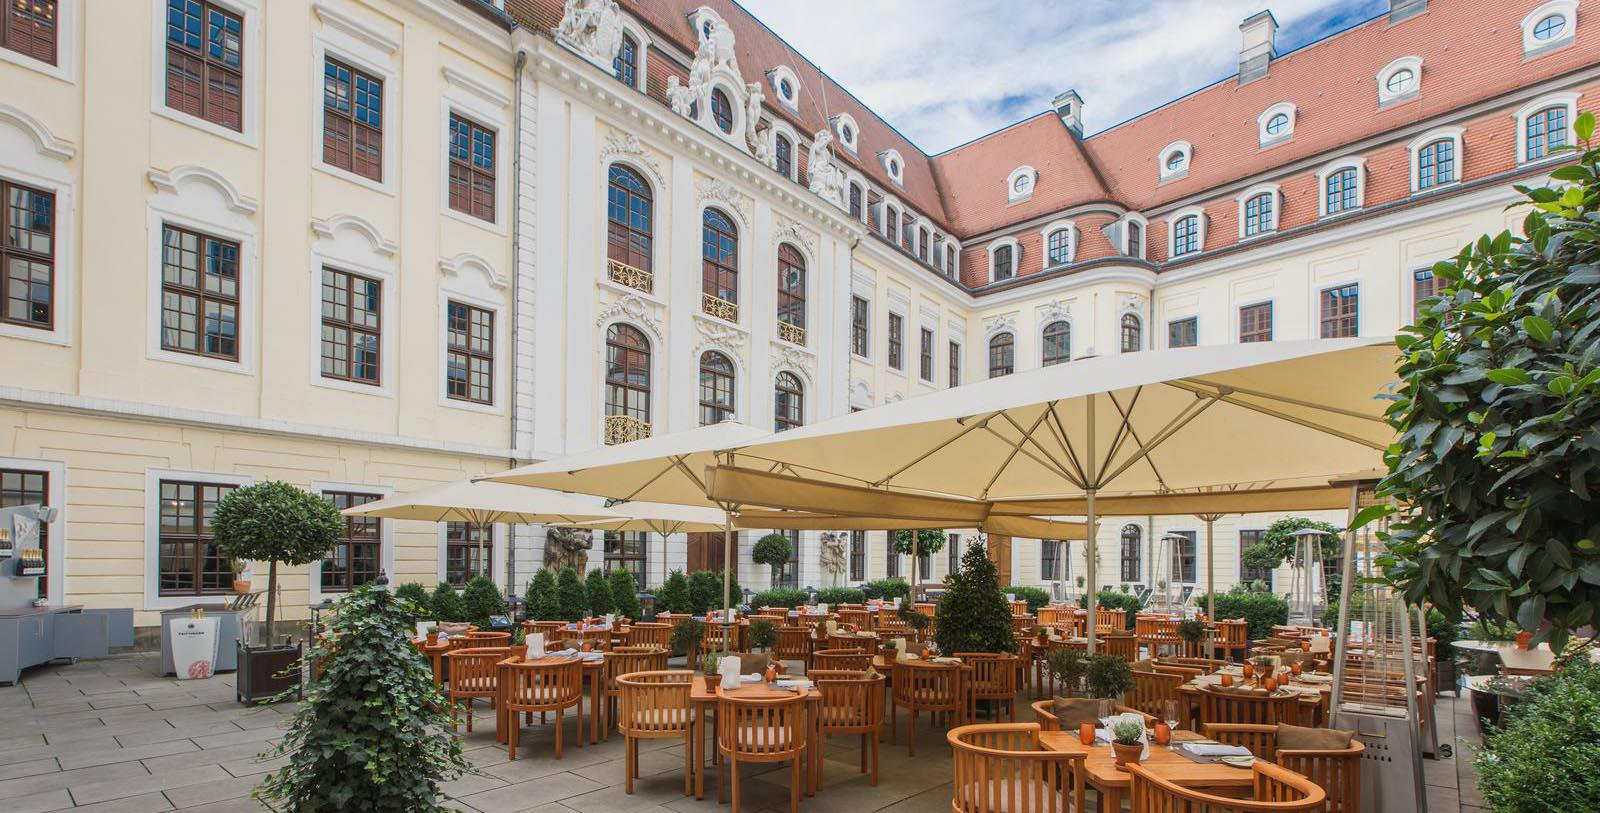 Image of Restaurant Patio, Hotel Taschenbergpalais Kempinski Dresden, Germany, 1700s, Member of Historic Hotels Worldwide, Explore